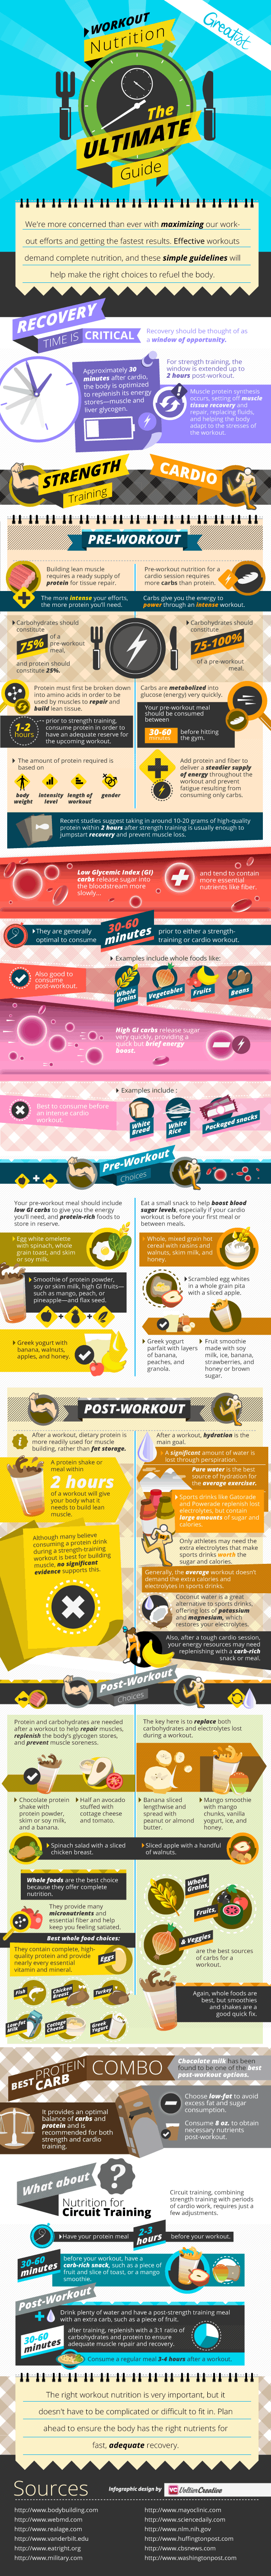 Ultimate Workout Nutrition Guide